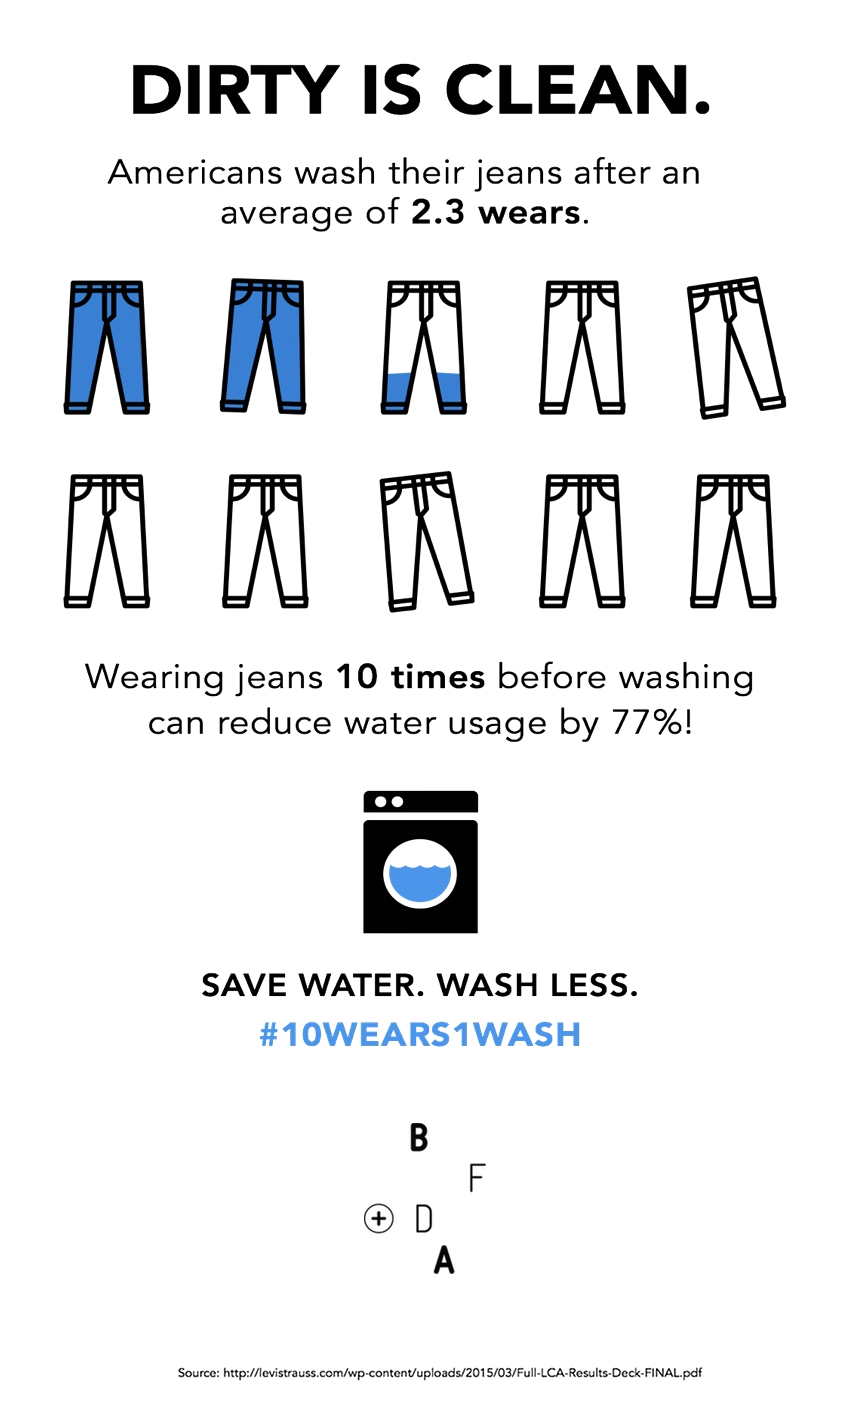 10WEARS1WASH w logo.jpg